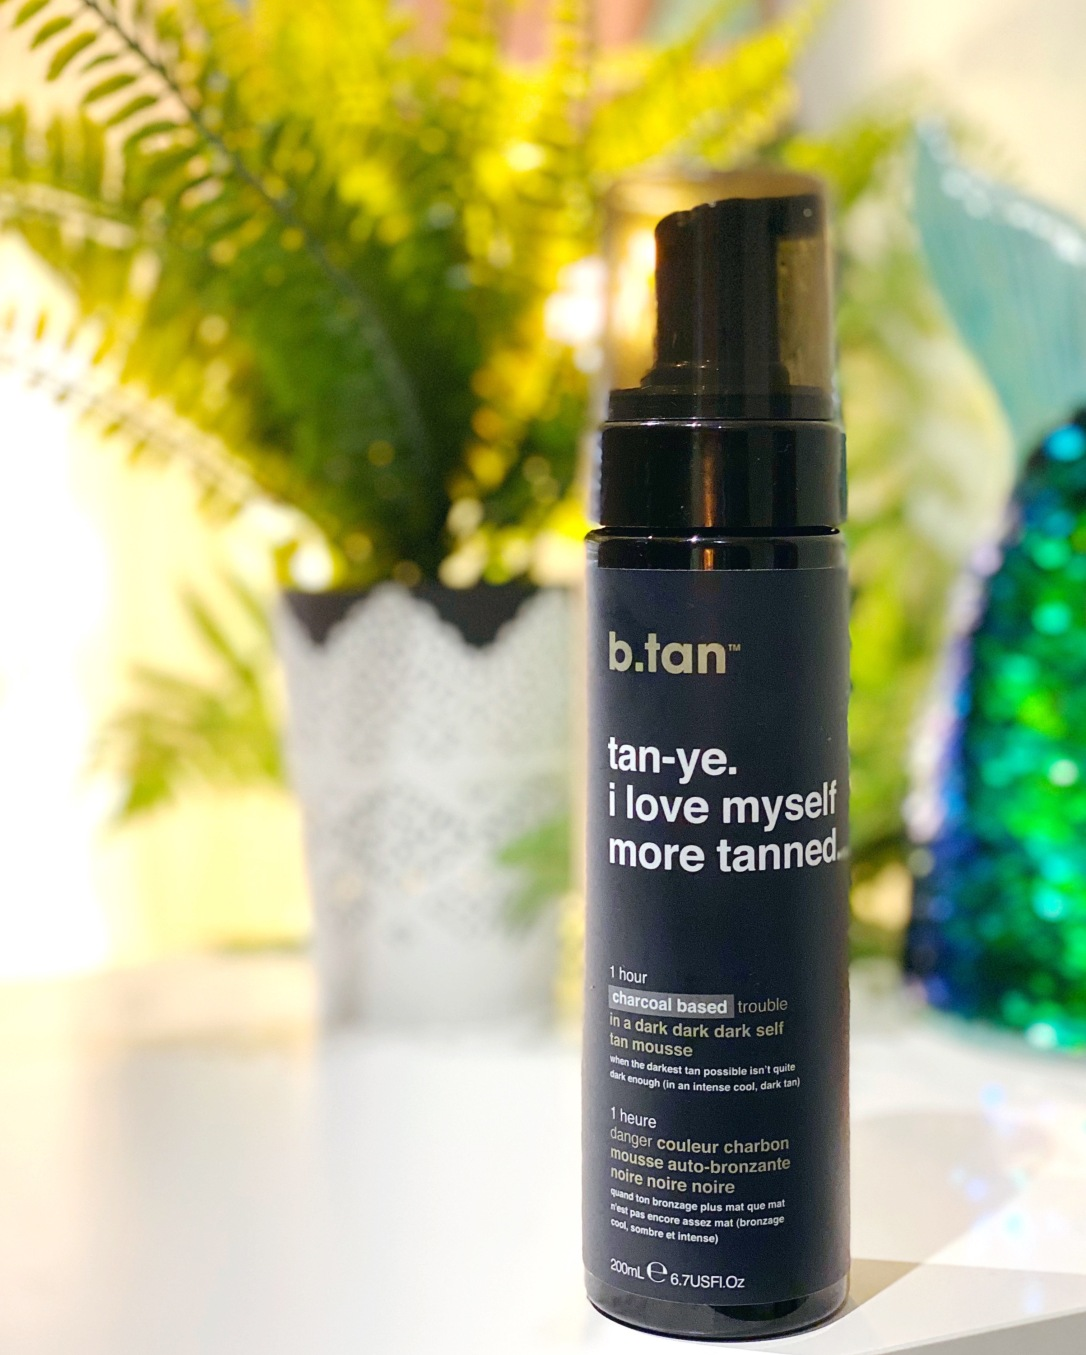 b.tan ALCHEMY BY AMY UK My Clean/Non Toxic False Tan Collection PARABEN FREE CRUELTY FREE VEGAN ORGANIC FAKE TAN FALSE TAN SELF TAN SUNLESS TANNER